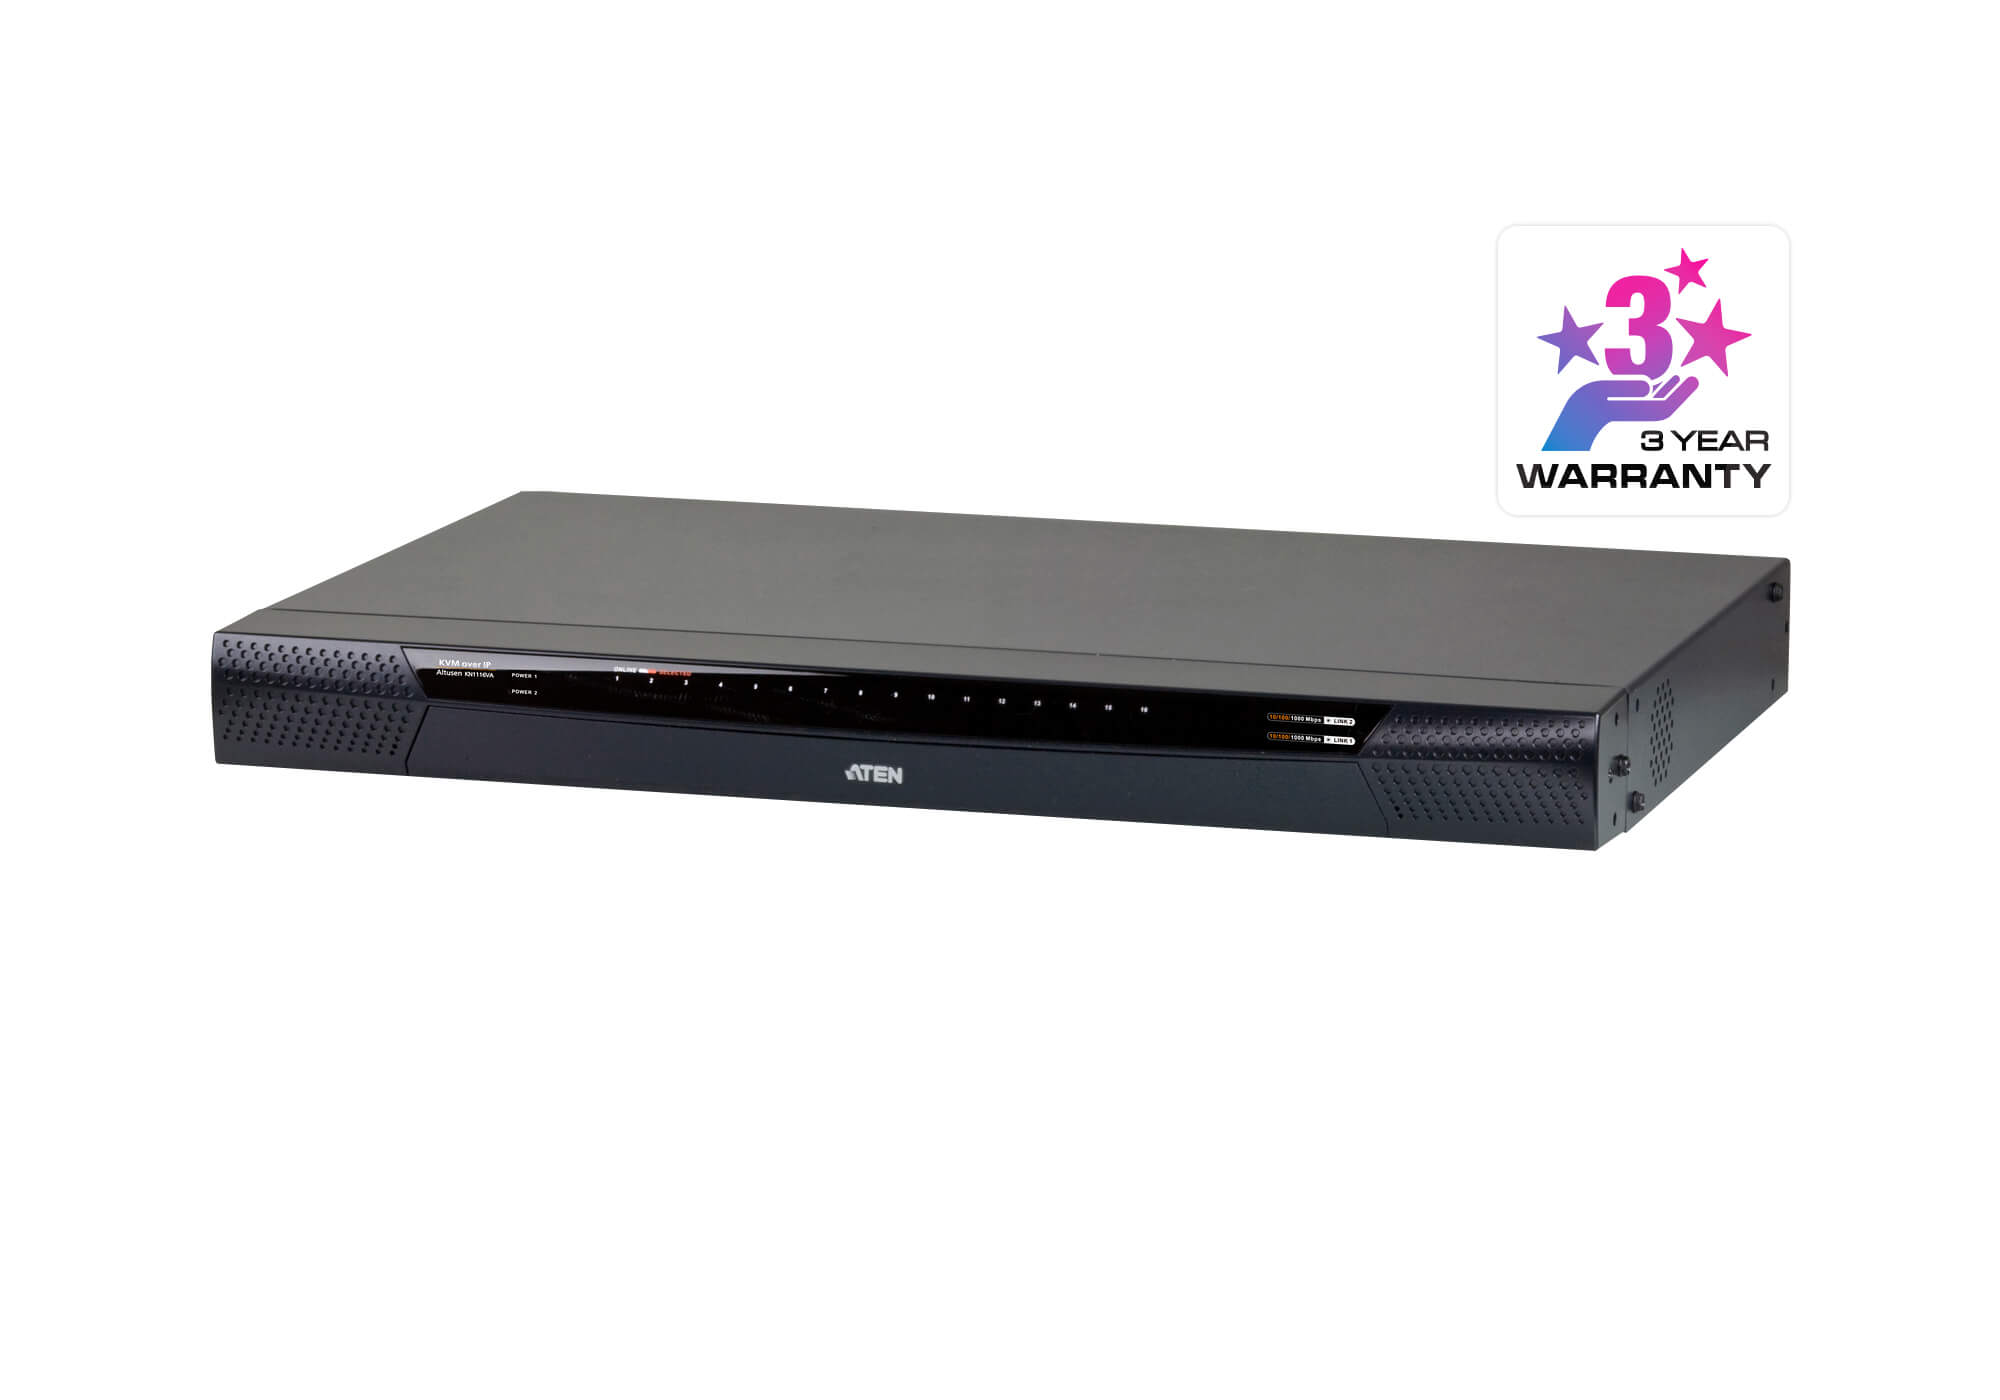 1-Local/1-Remote Access 16-Port Cat 5 KVM over IP Switch with Virtual Media (1920 x 1200)